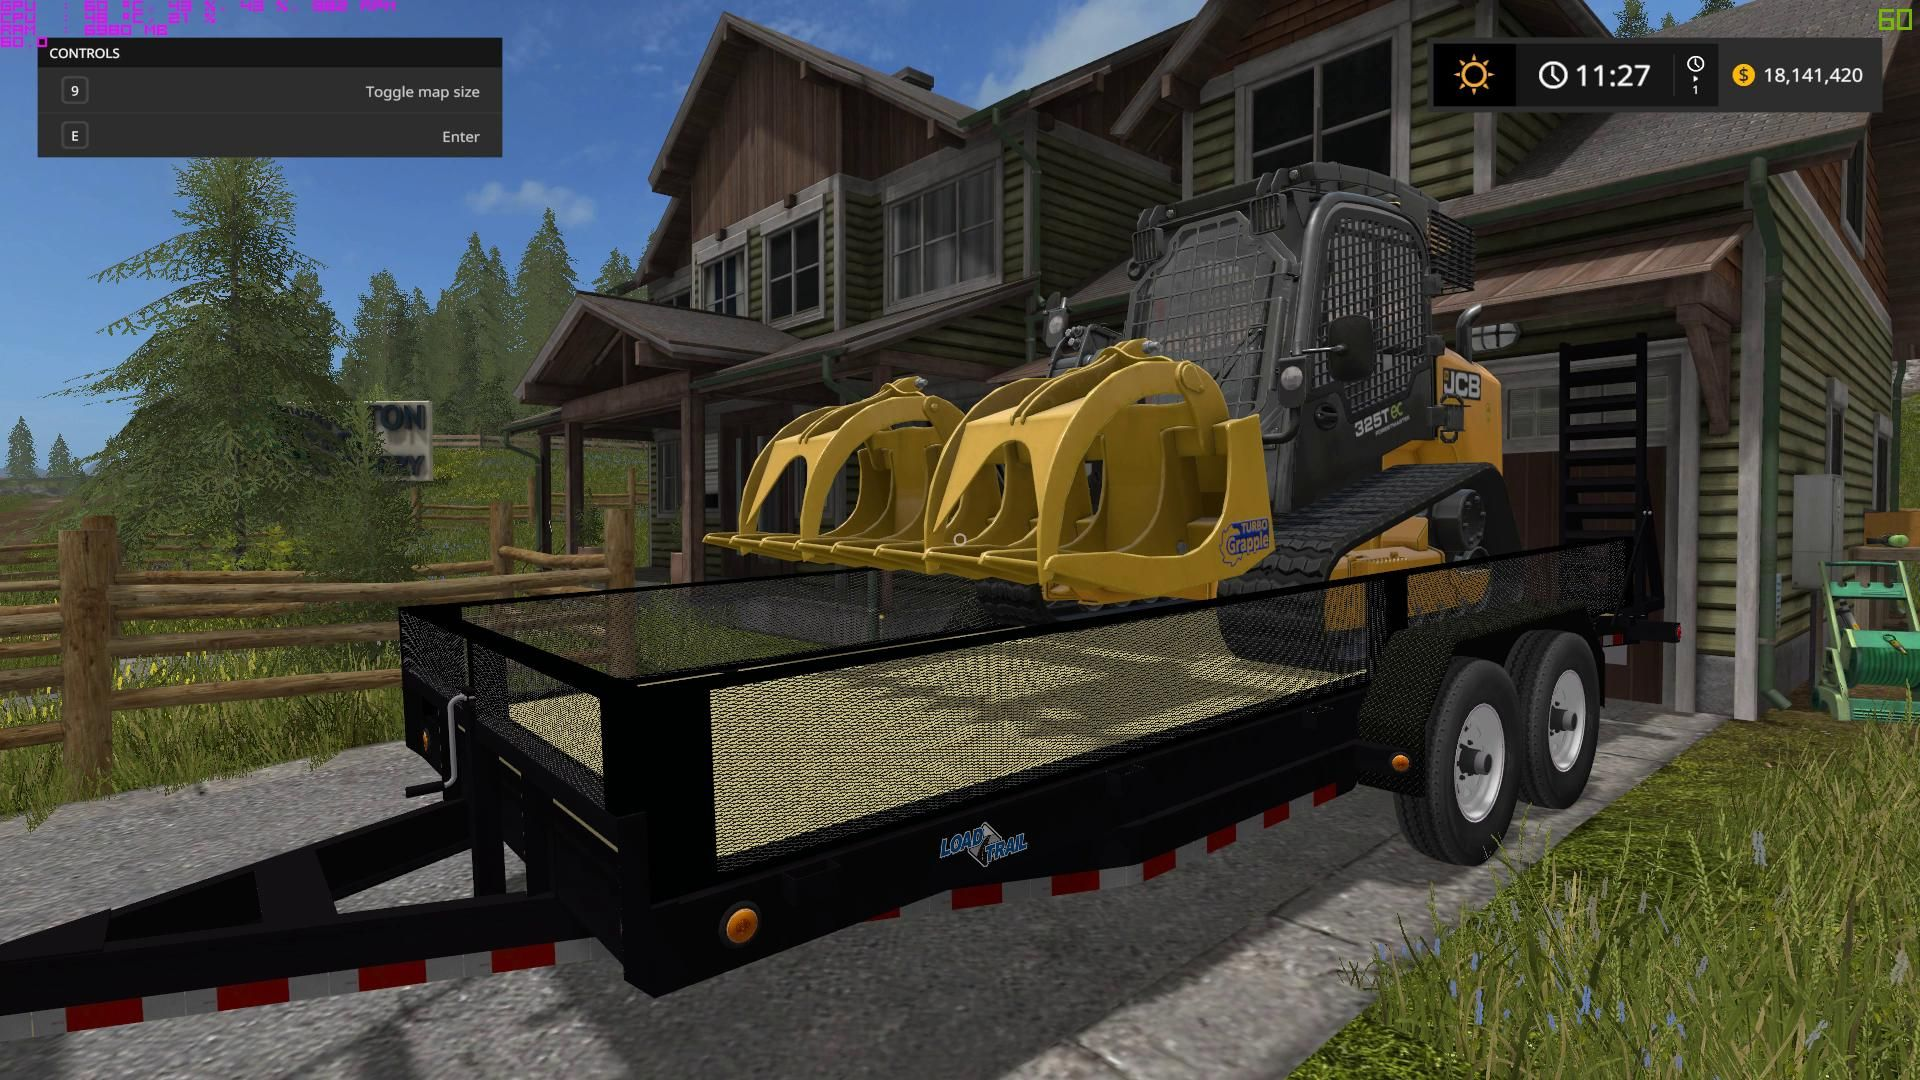 Pin by Brian Hay on jcb | Landscape trailers, Monster trucks, Sims mods